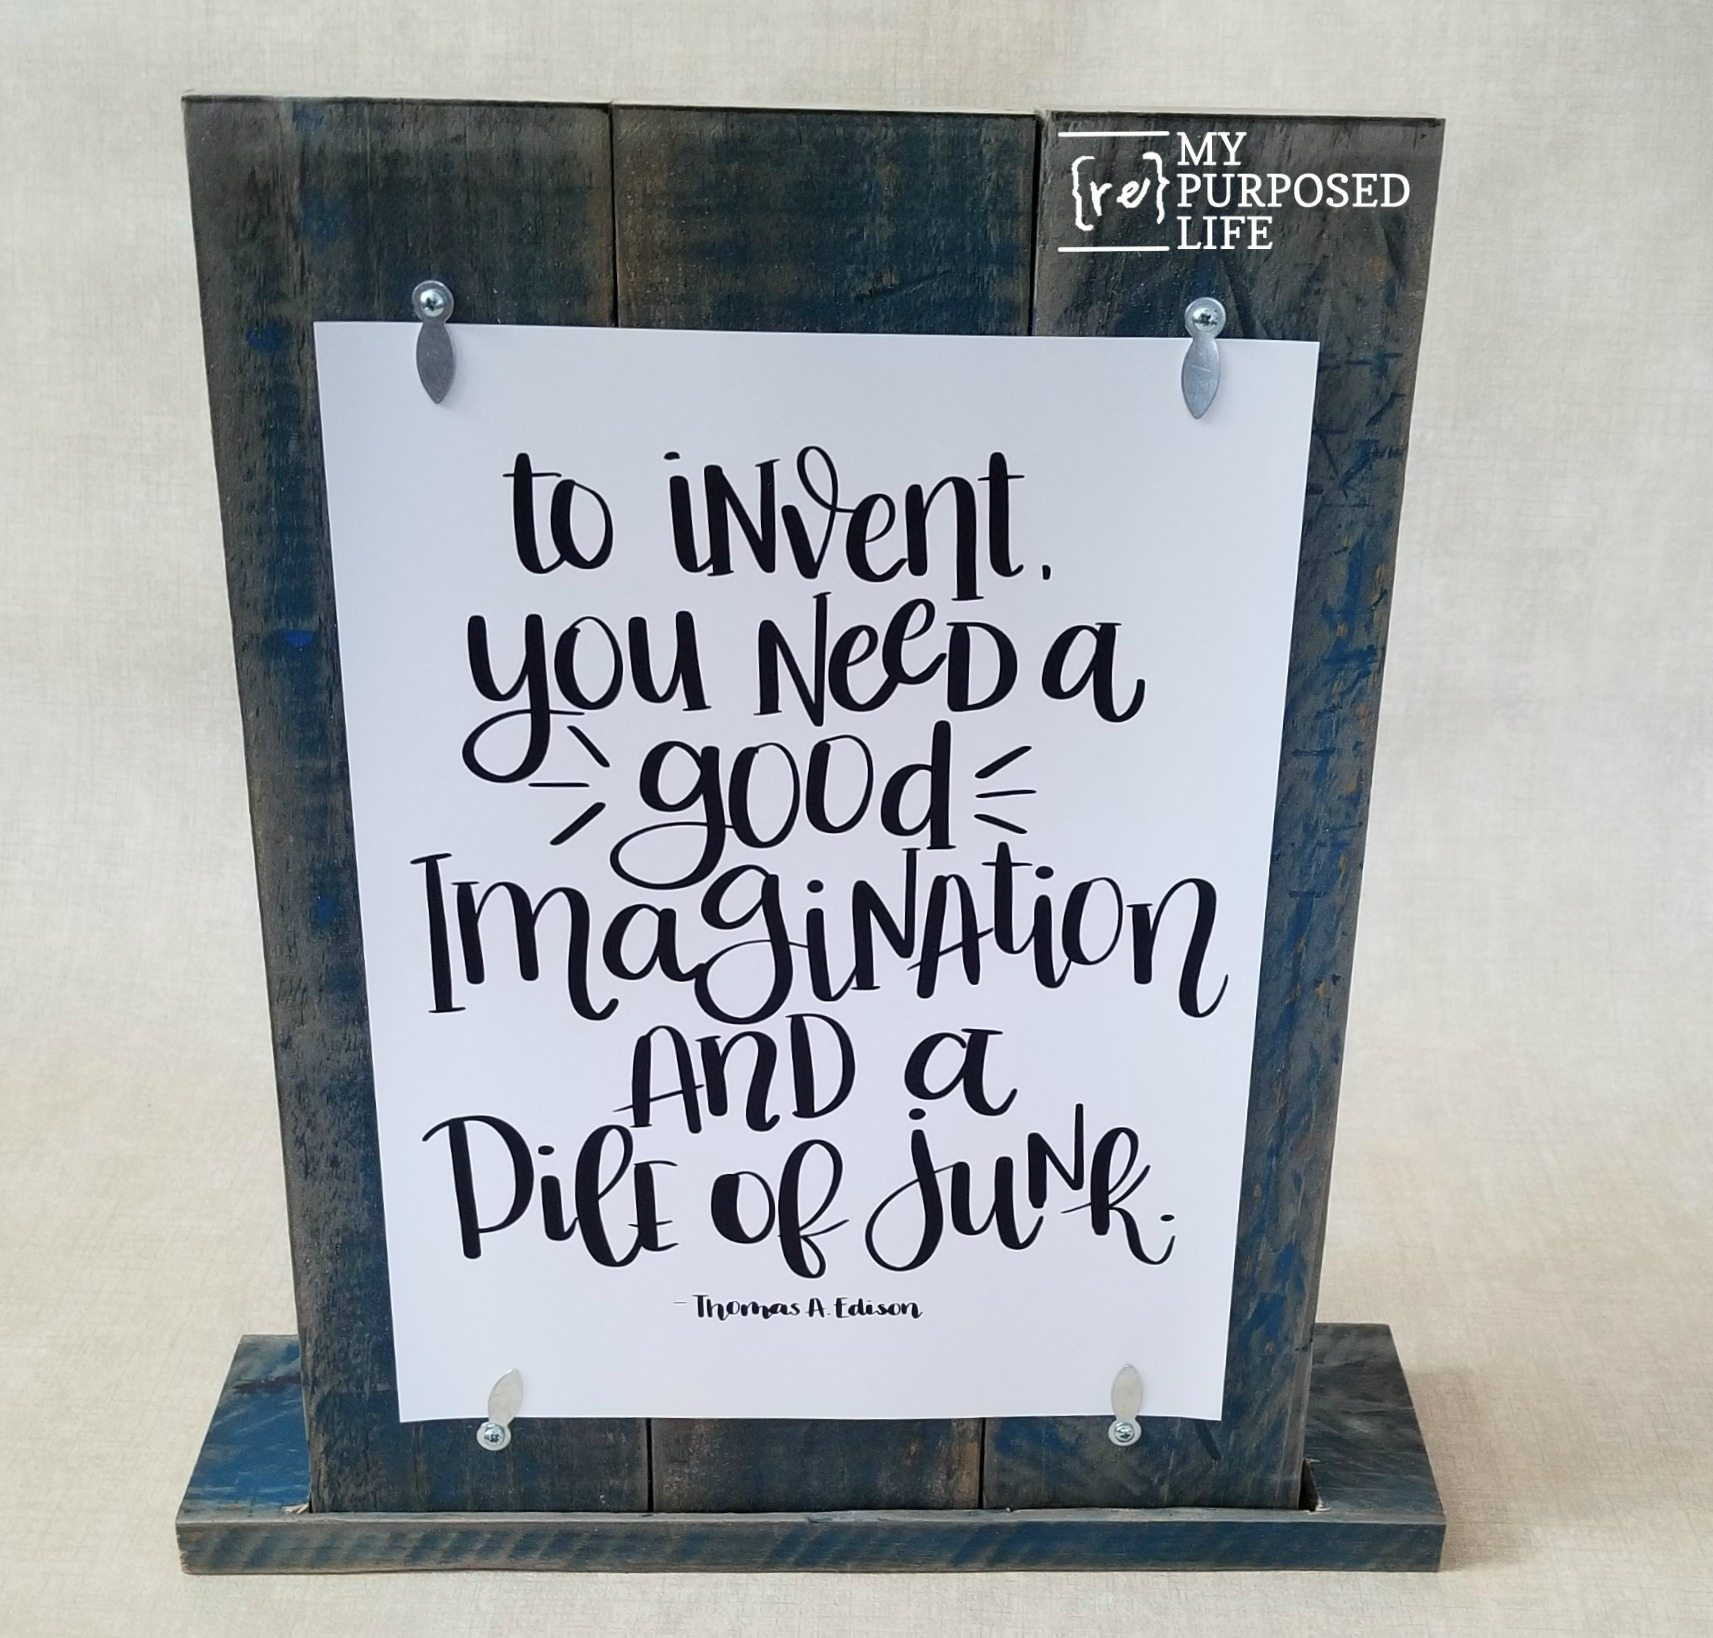 picture regarding Printable Frame titled Printable Pallet Body - My Repurposed Life®